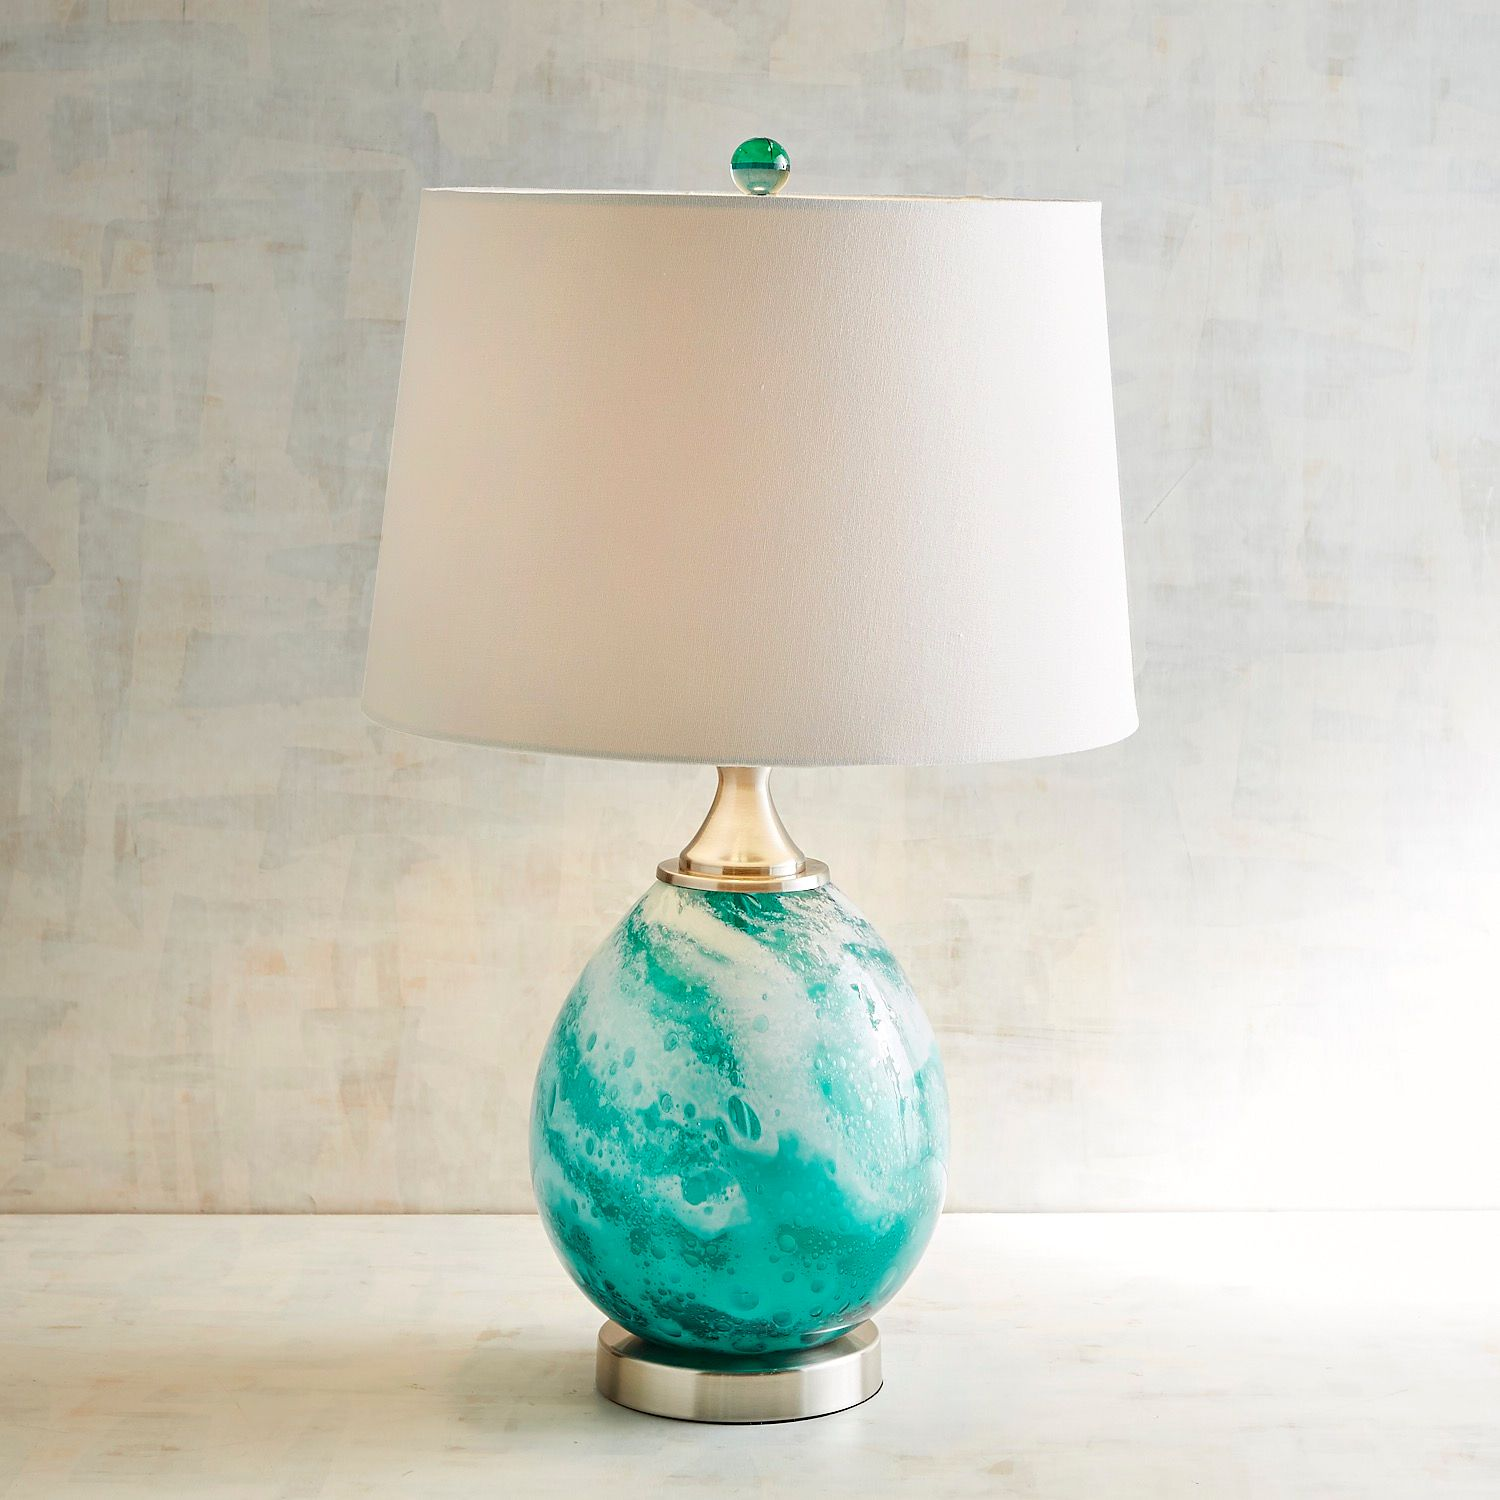 seafoam art glass table lamp pier imports one accent lamps ikea storage baskets beach cream pool furniture round and wood coffee chinese shades wedding reception decorations metal